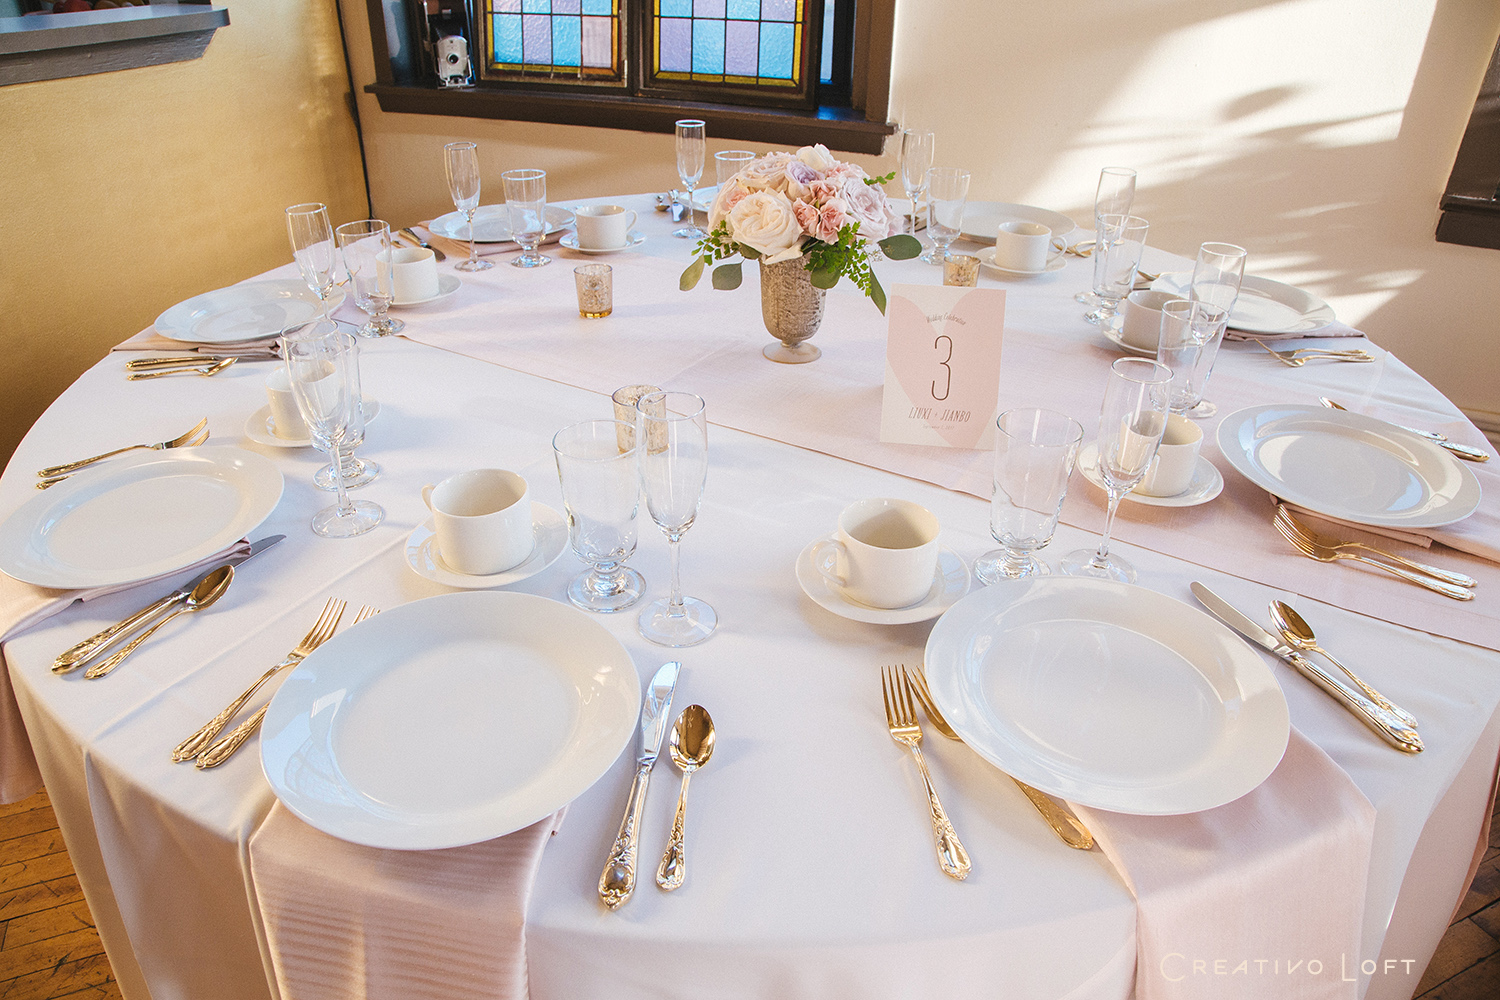 03-CreativoLoft-blush-brunch-wedding.jpg